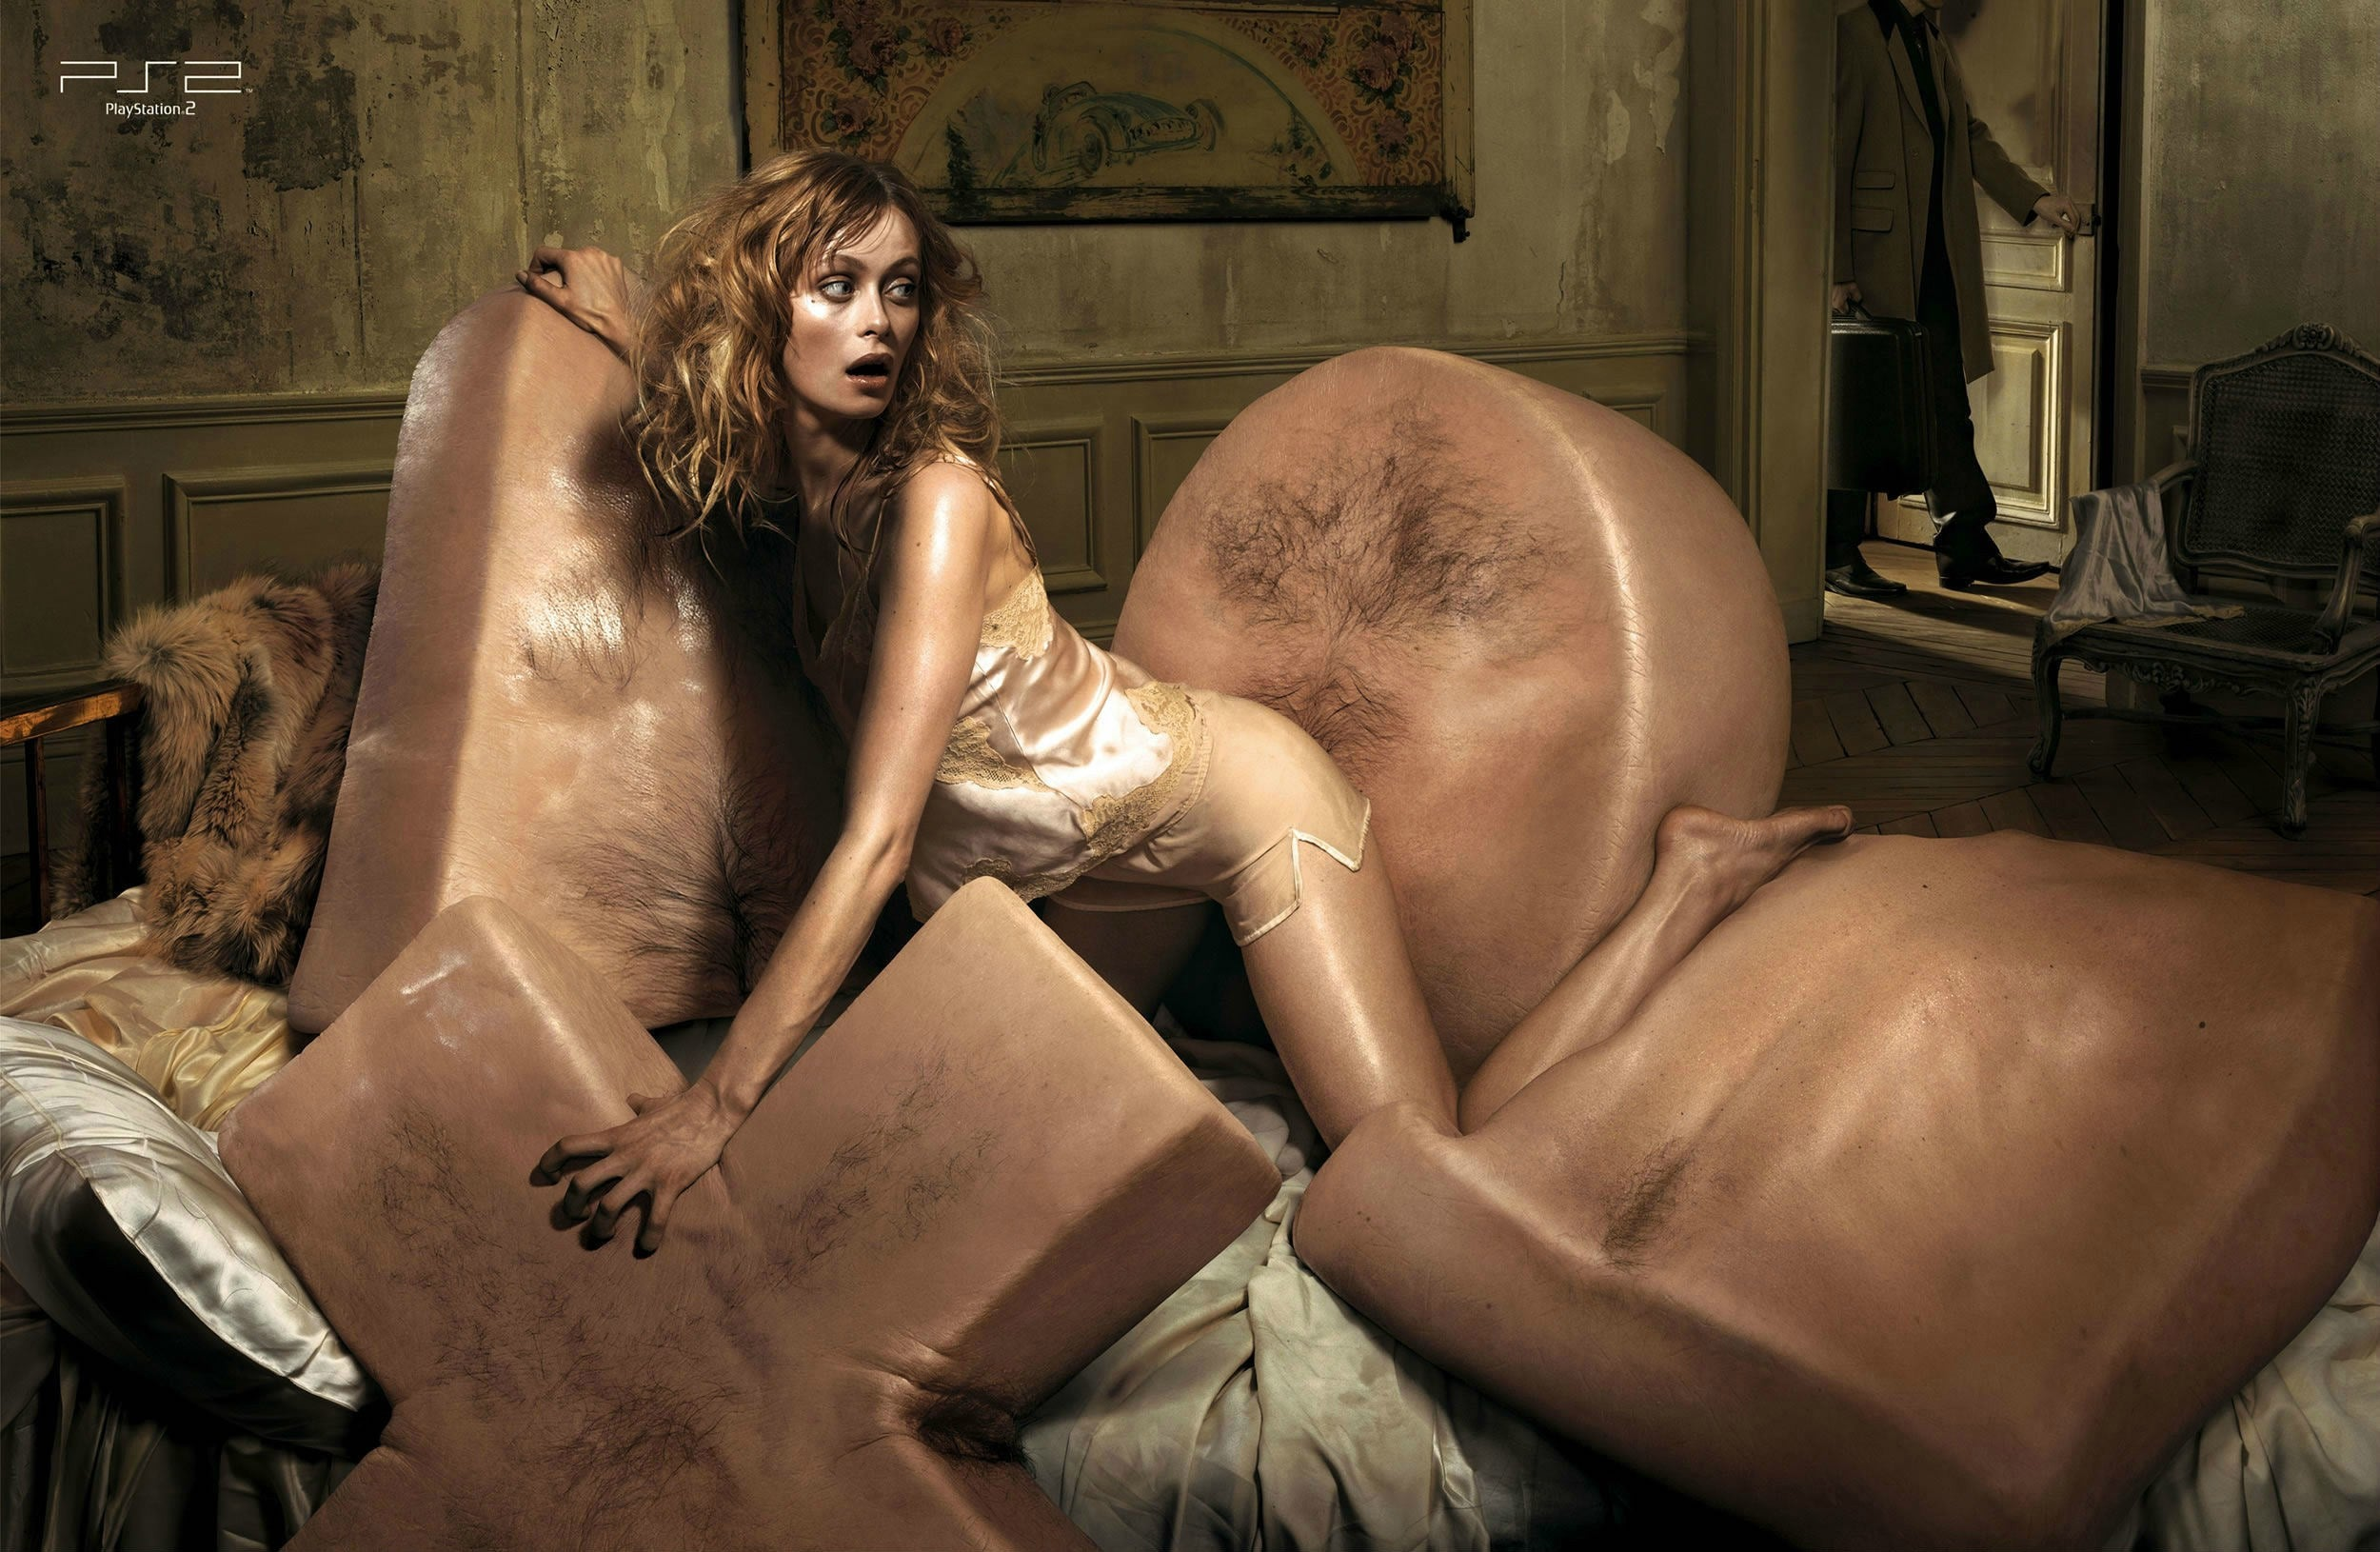 You'll Never Unsee This Gallery Of Grotesque PlayStation 2 Ads